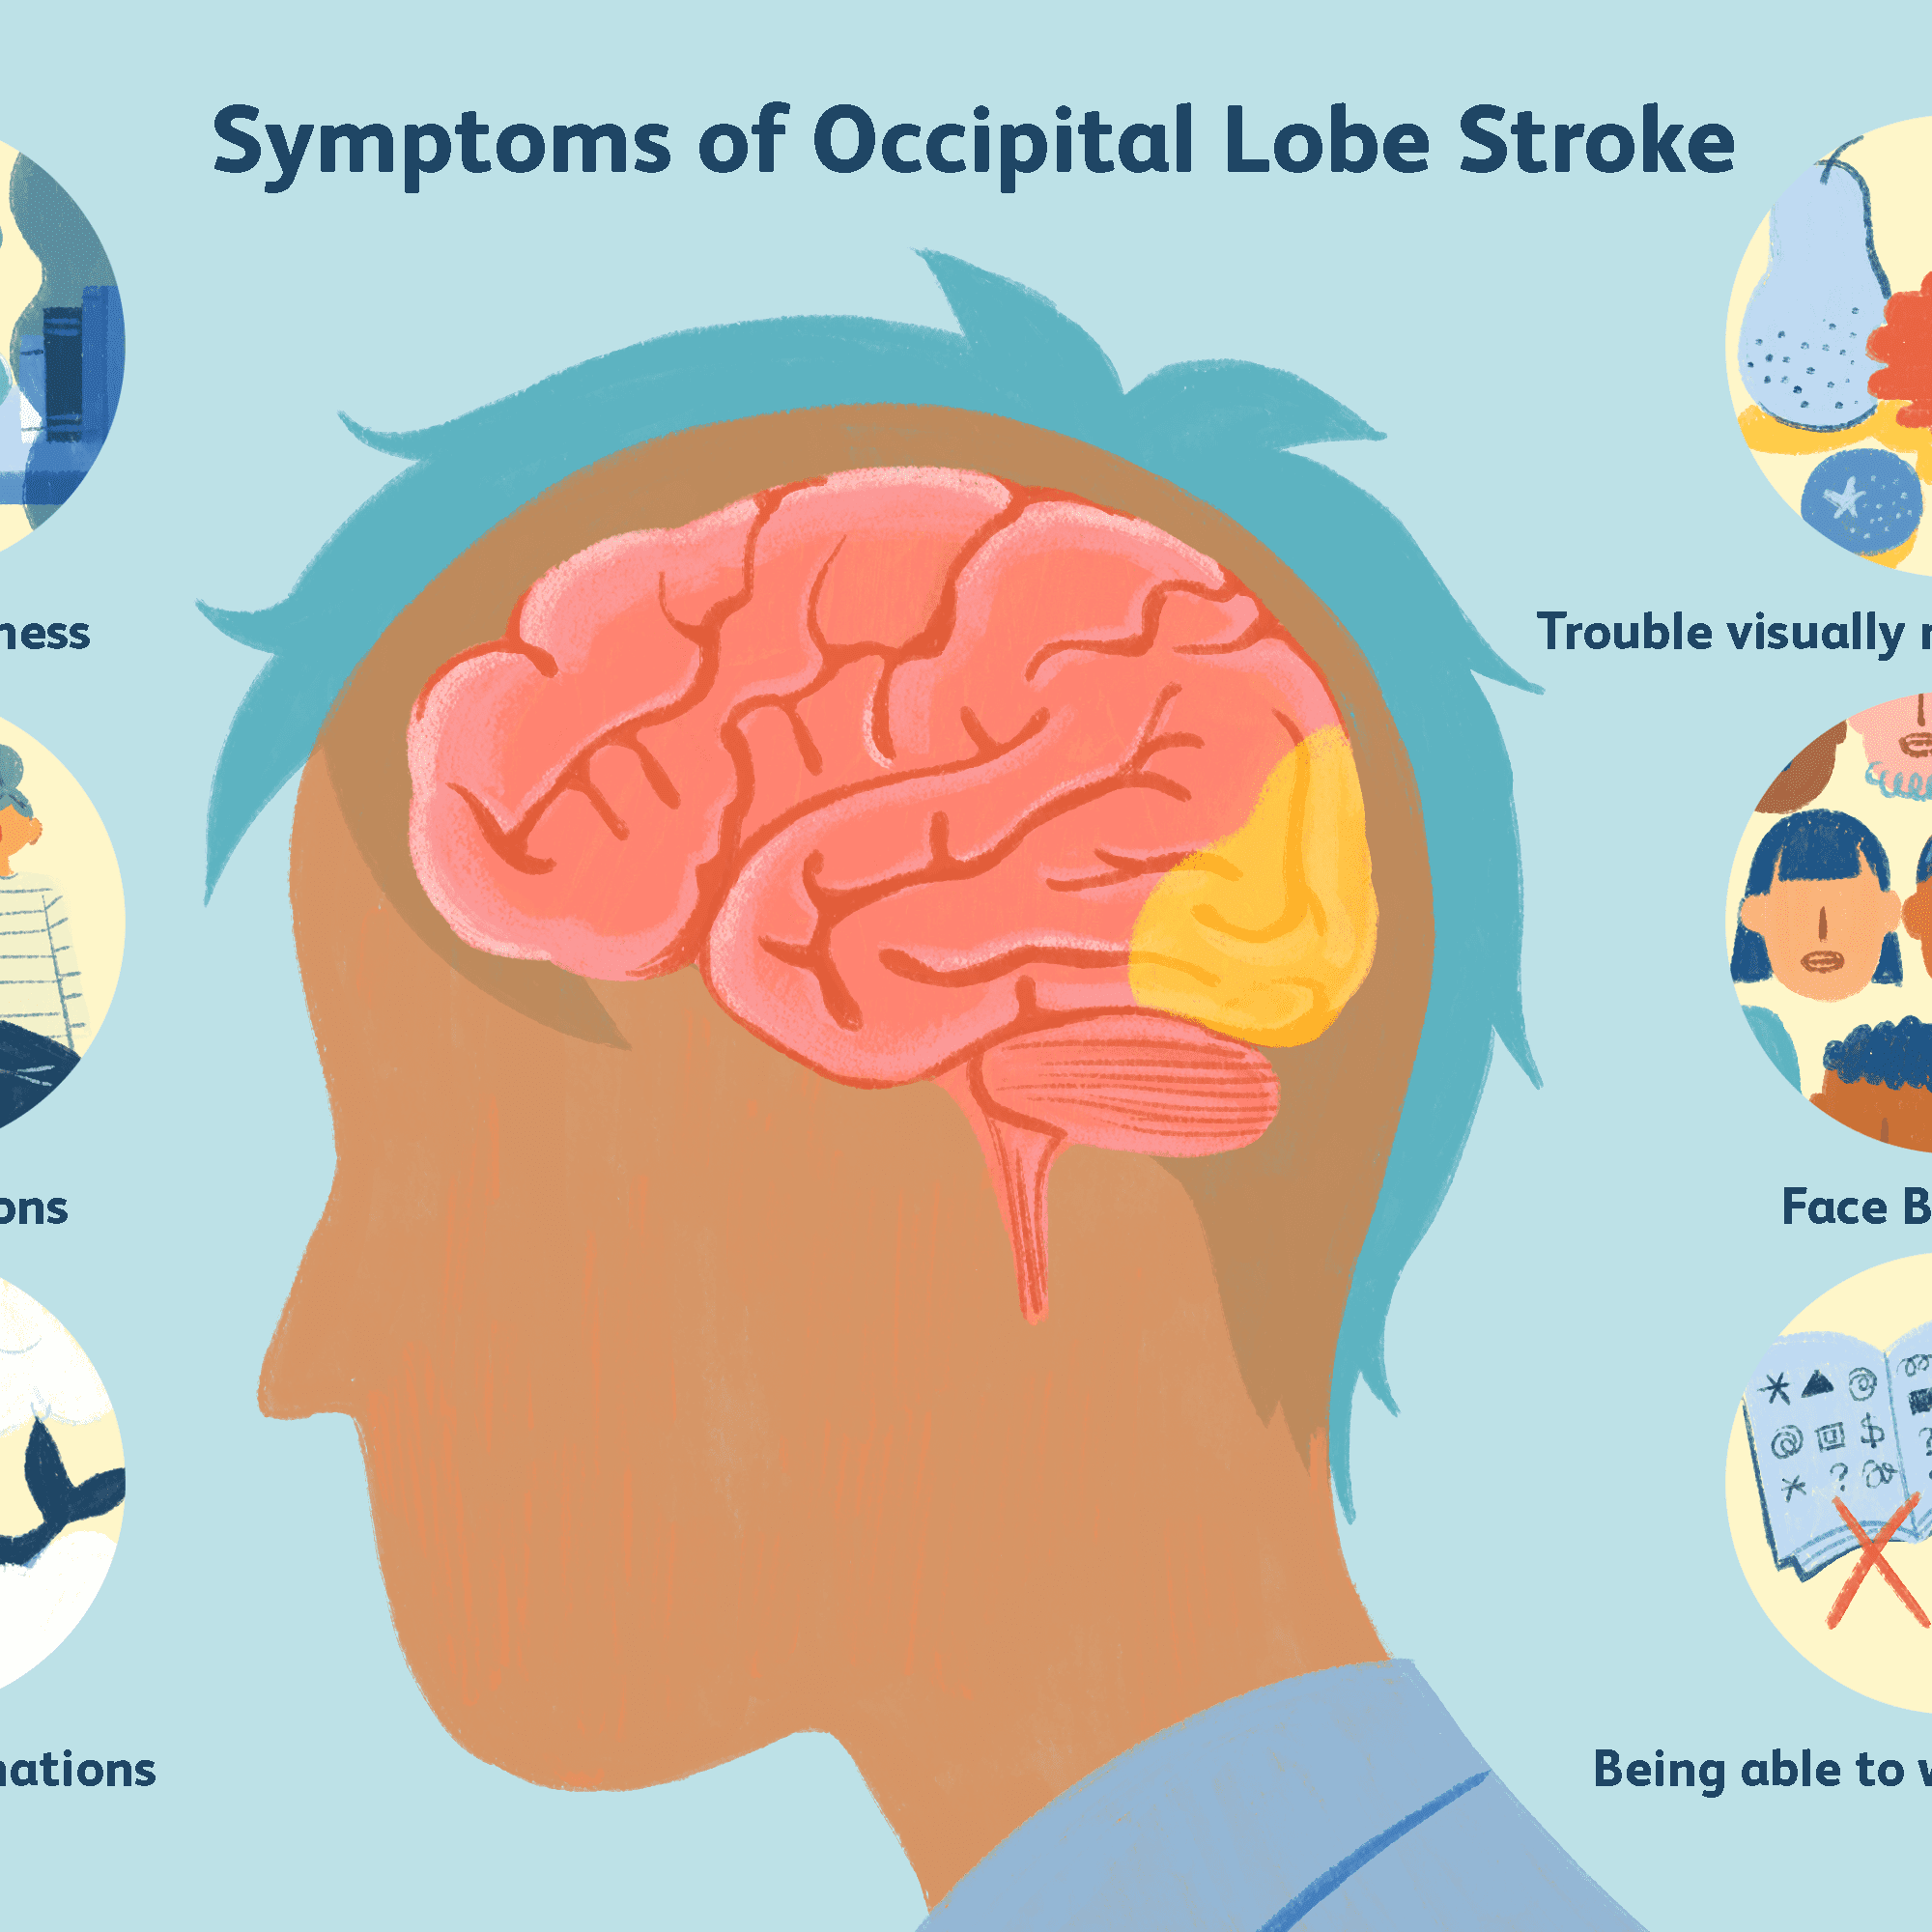 The Effects of an Occipital Lobe Stroke